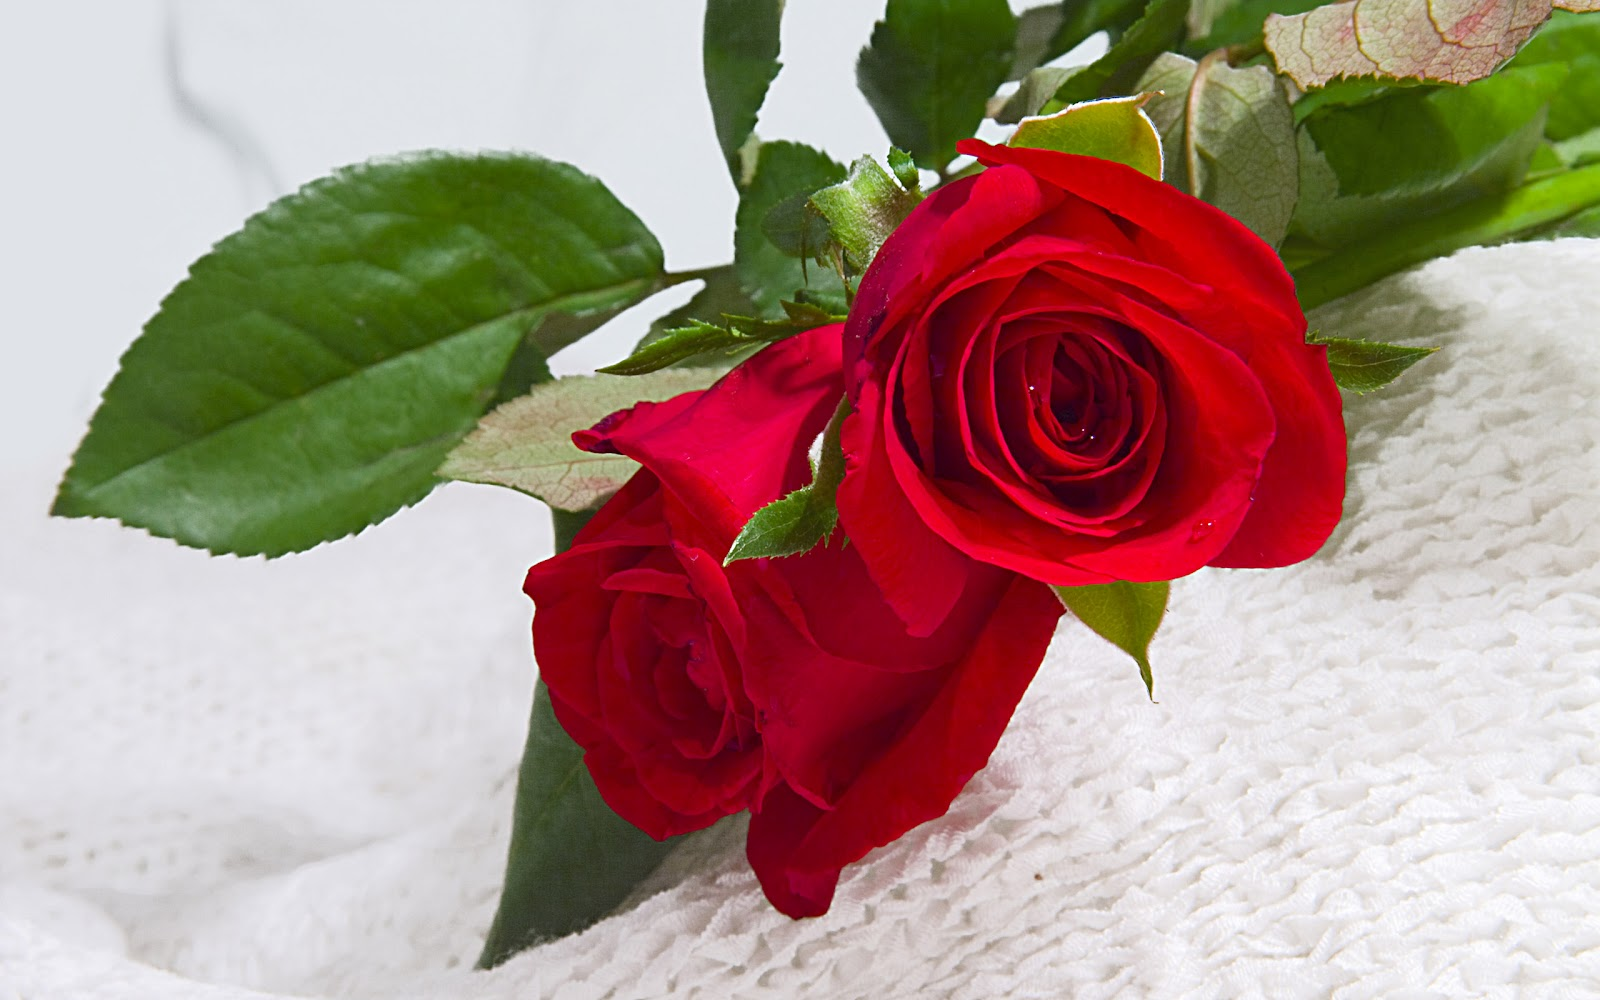 3d Animated Wallpapers For Windows 7 Hd Red Rose Wallpaper Free Red Roses Hd Wallpapers